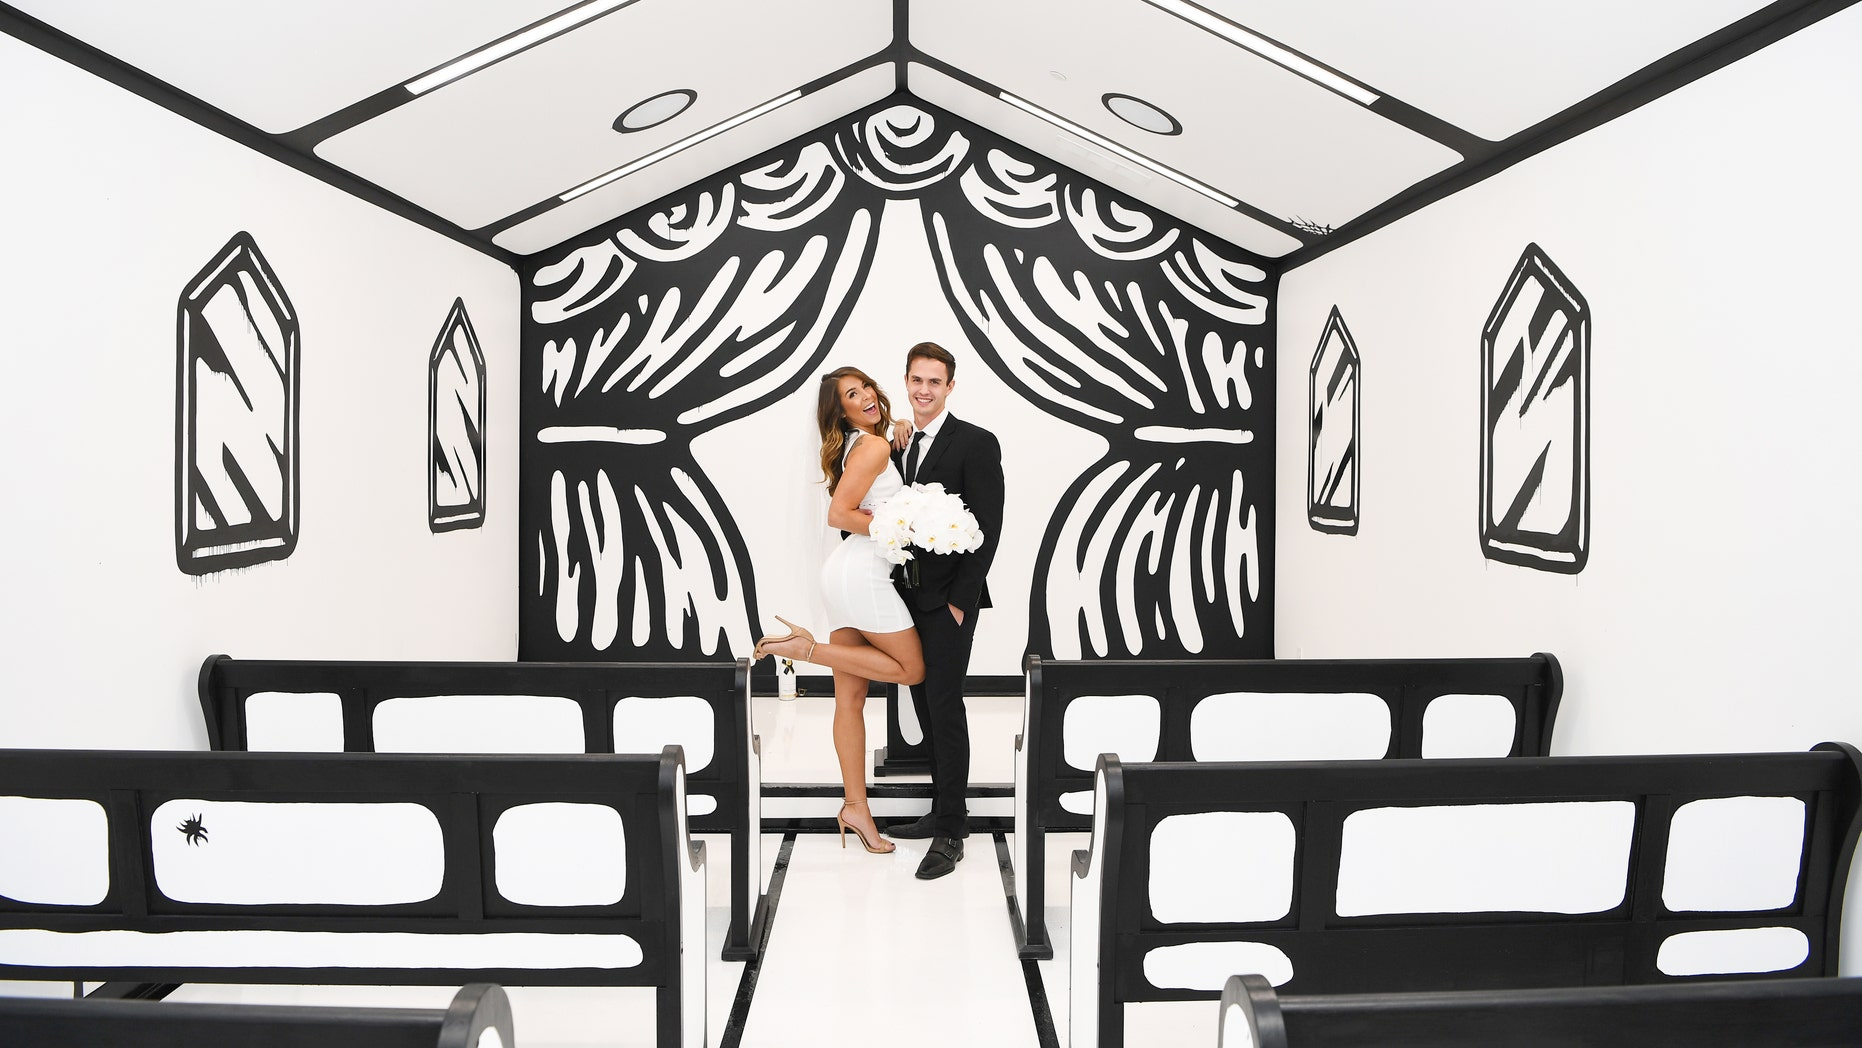 """The """"Til Death Do Us Part"""" installation, which opens on Friday at the Palms Casino Resort in Las Vegas, was dreamed up by graphic designer Joshua Vides."""